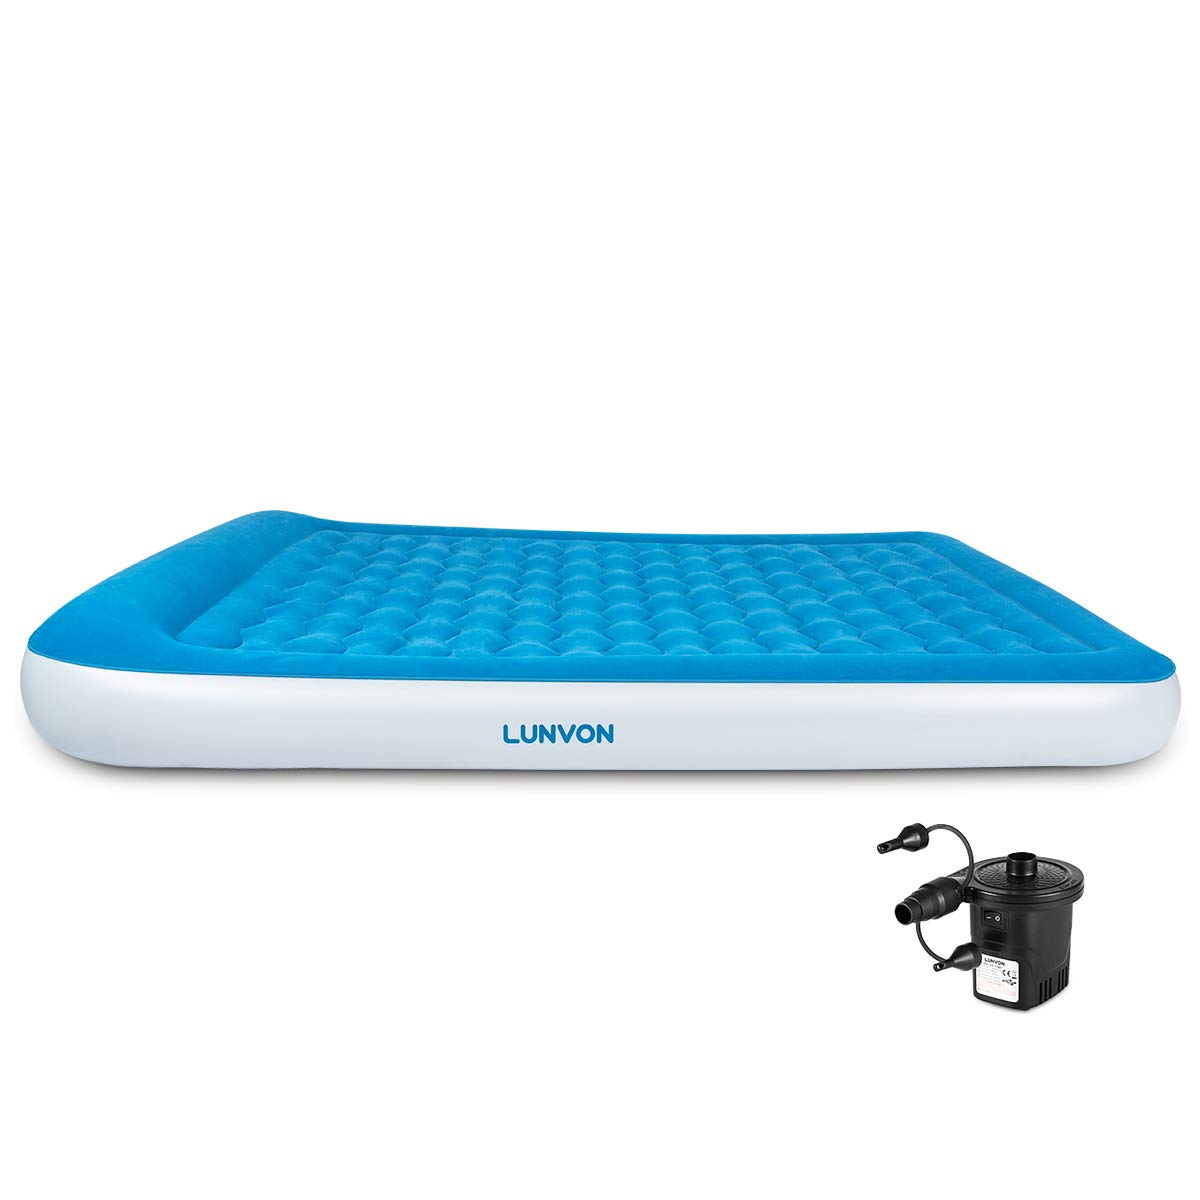 Lunvon Queen Size Self Inflatable Pad Camping Air Mattress Blow Up Bed with Built-in Pillow Anti-Leakage Raised Airbed with Rechargeable Pump for Home, Guest, Height 10'', 2-Year Warranty